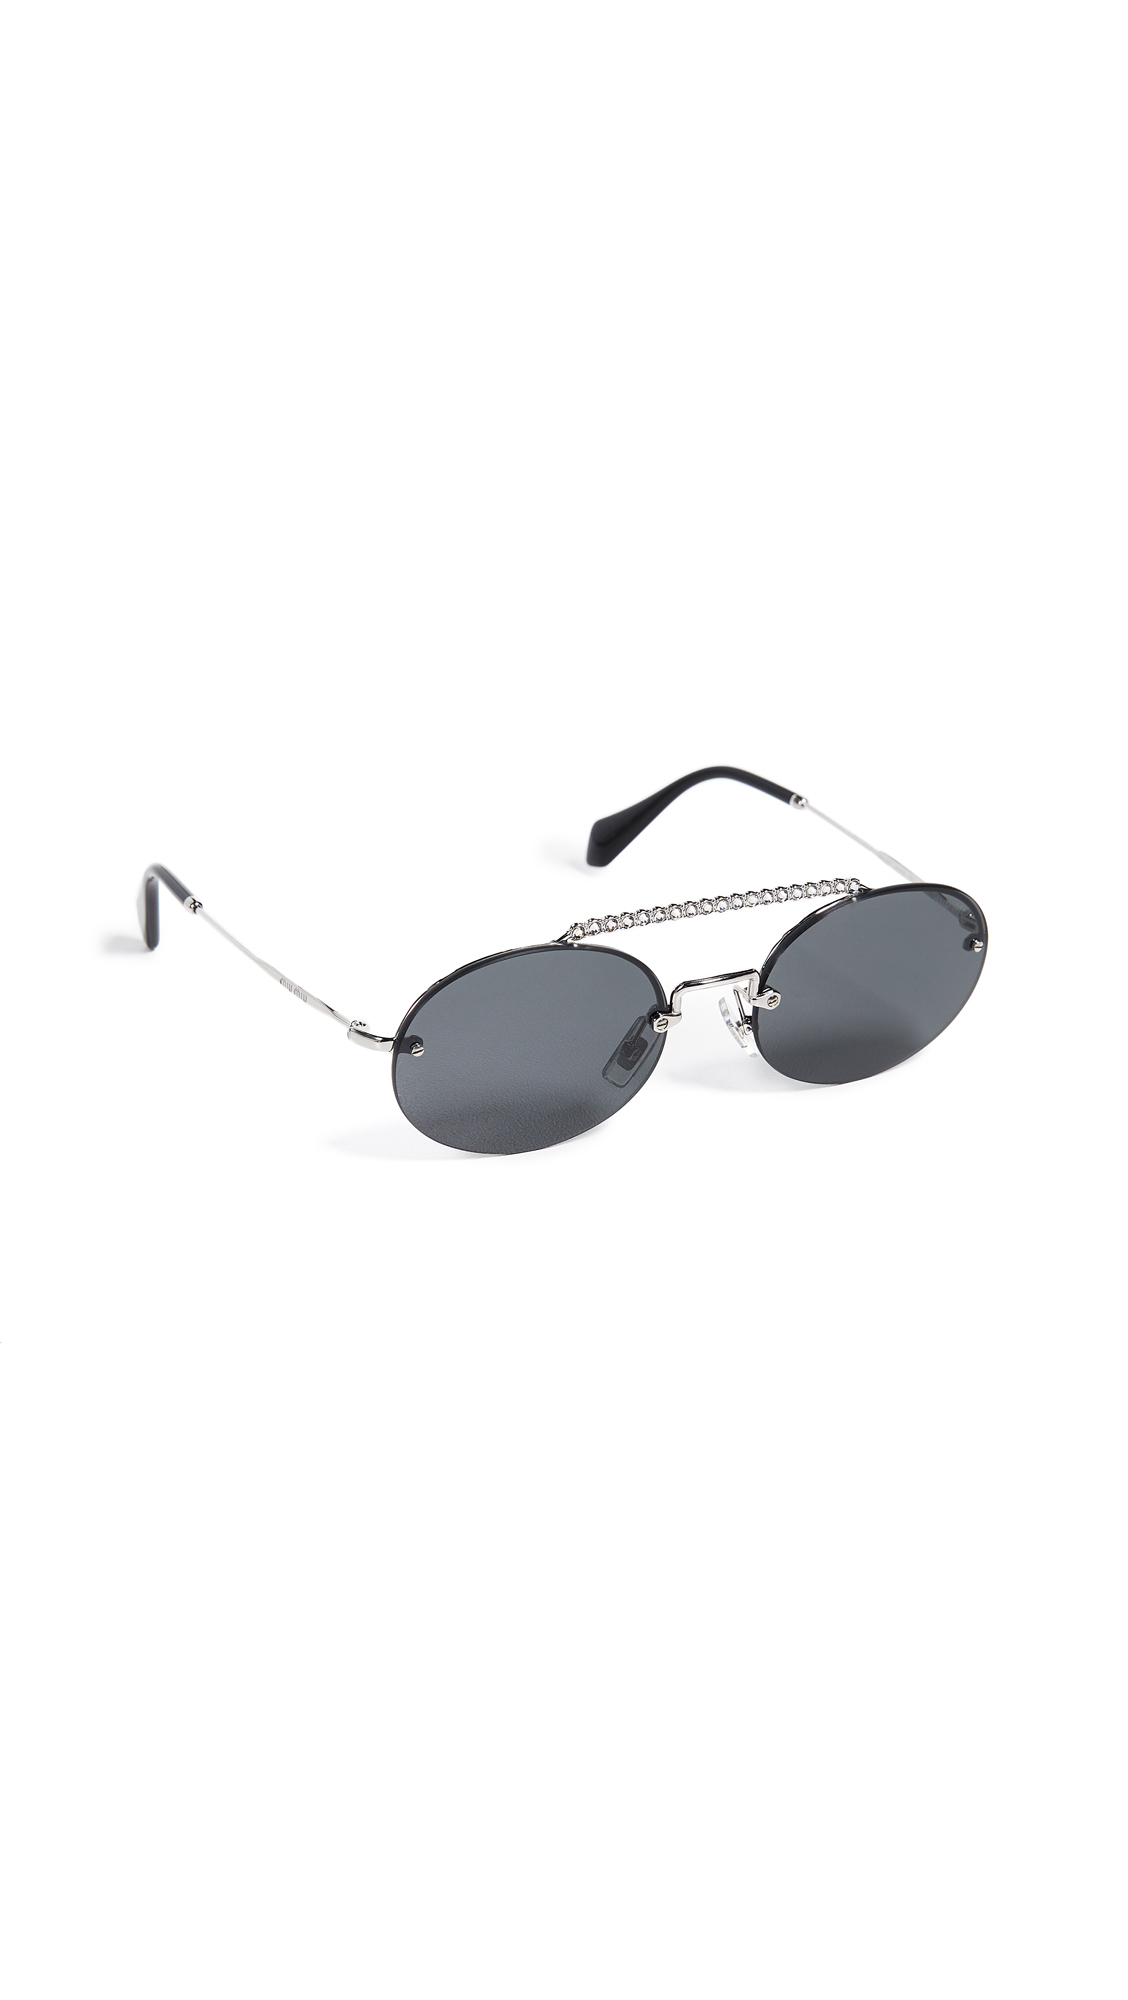 Miu Miu Round Aviator Sunglasses In Silver/Grey